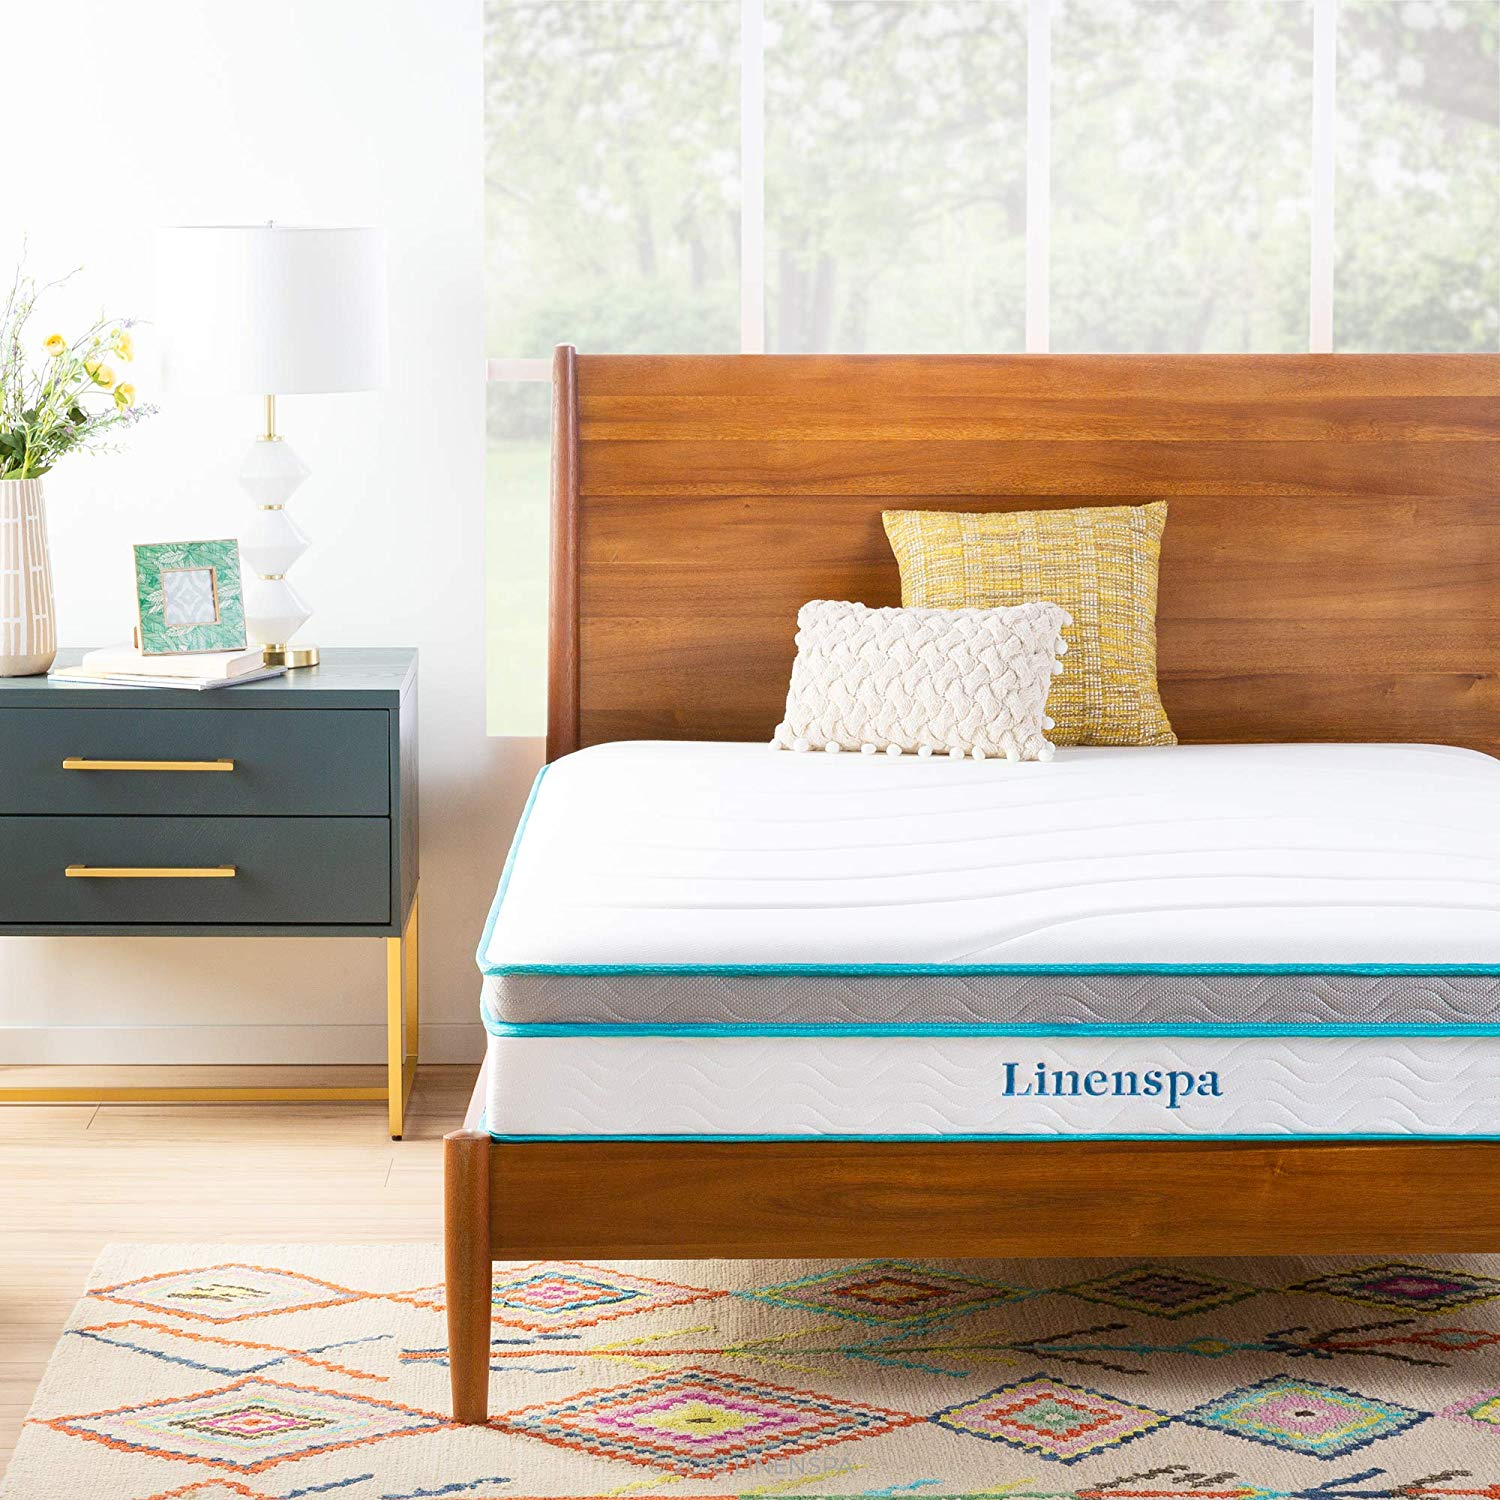 Image result for linenspa mattress